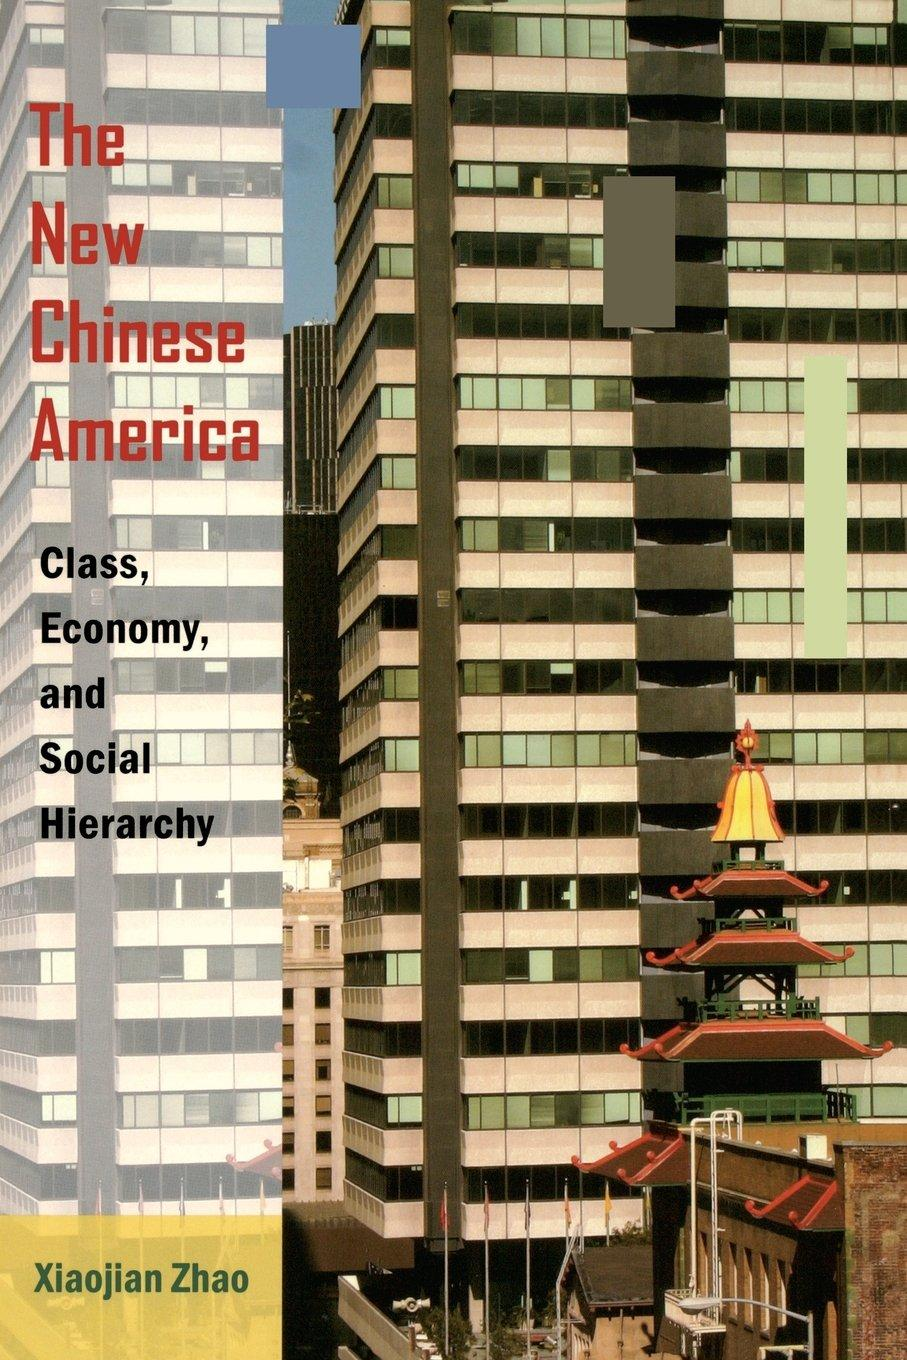 The New Chinese America (2010)